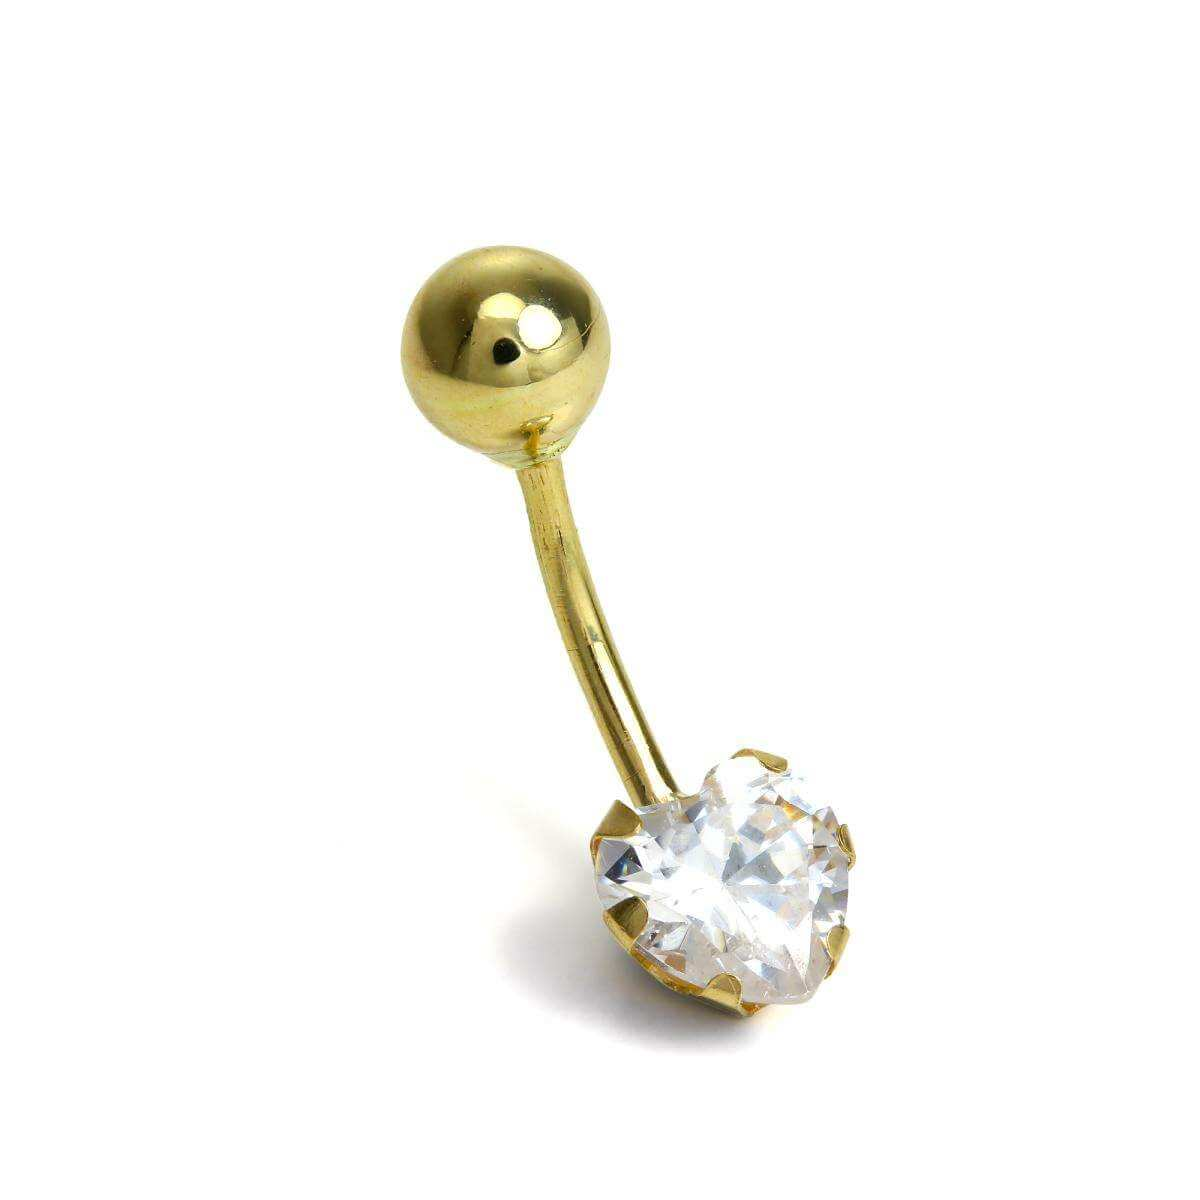 9ct Gold Belly Bar Piercing with Clear CZ Crystal Heart